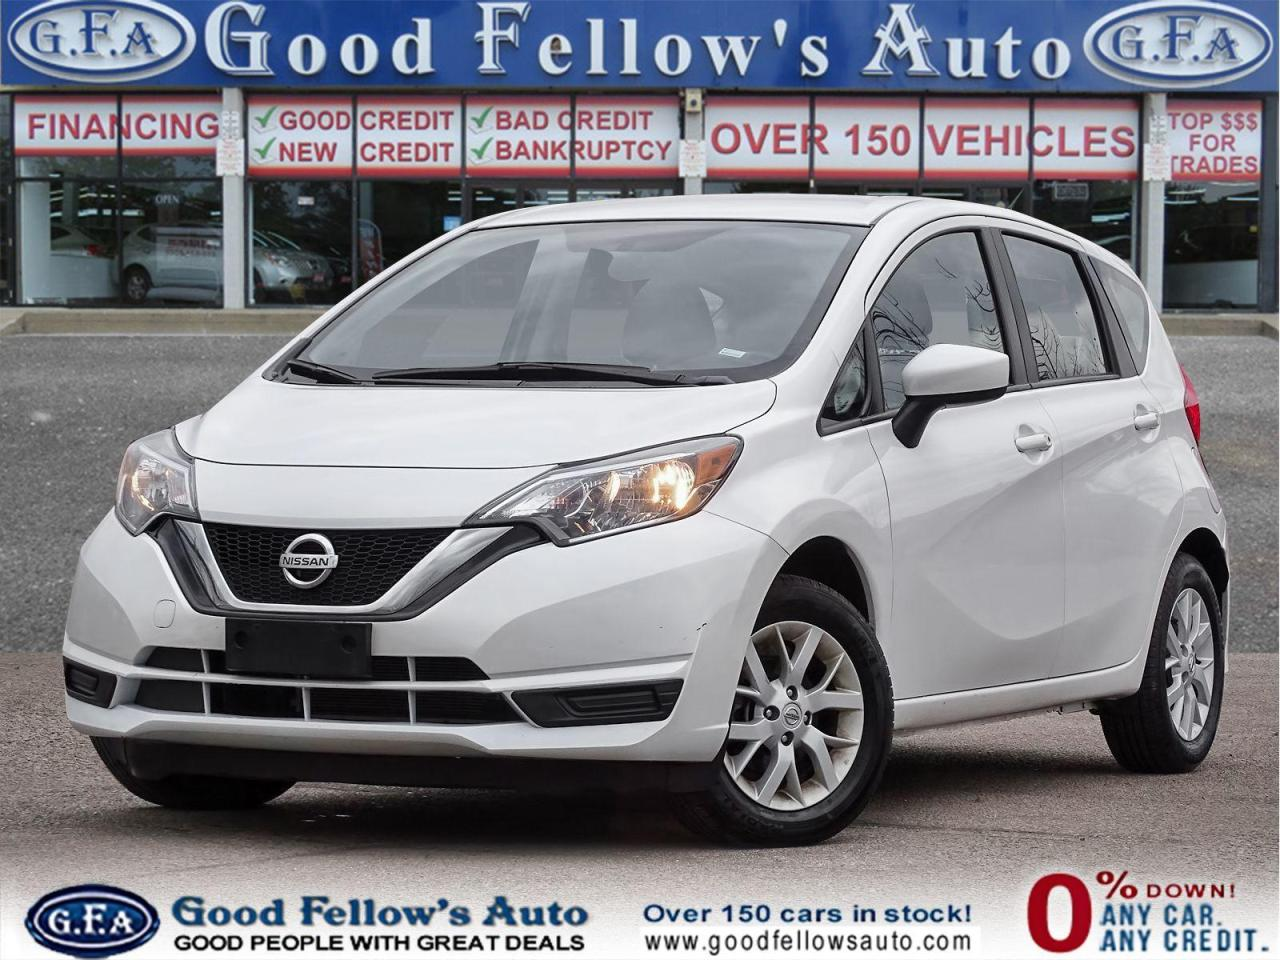 used 2019 Nissan Versa Note car, priced at $14,999